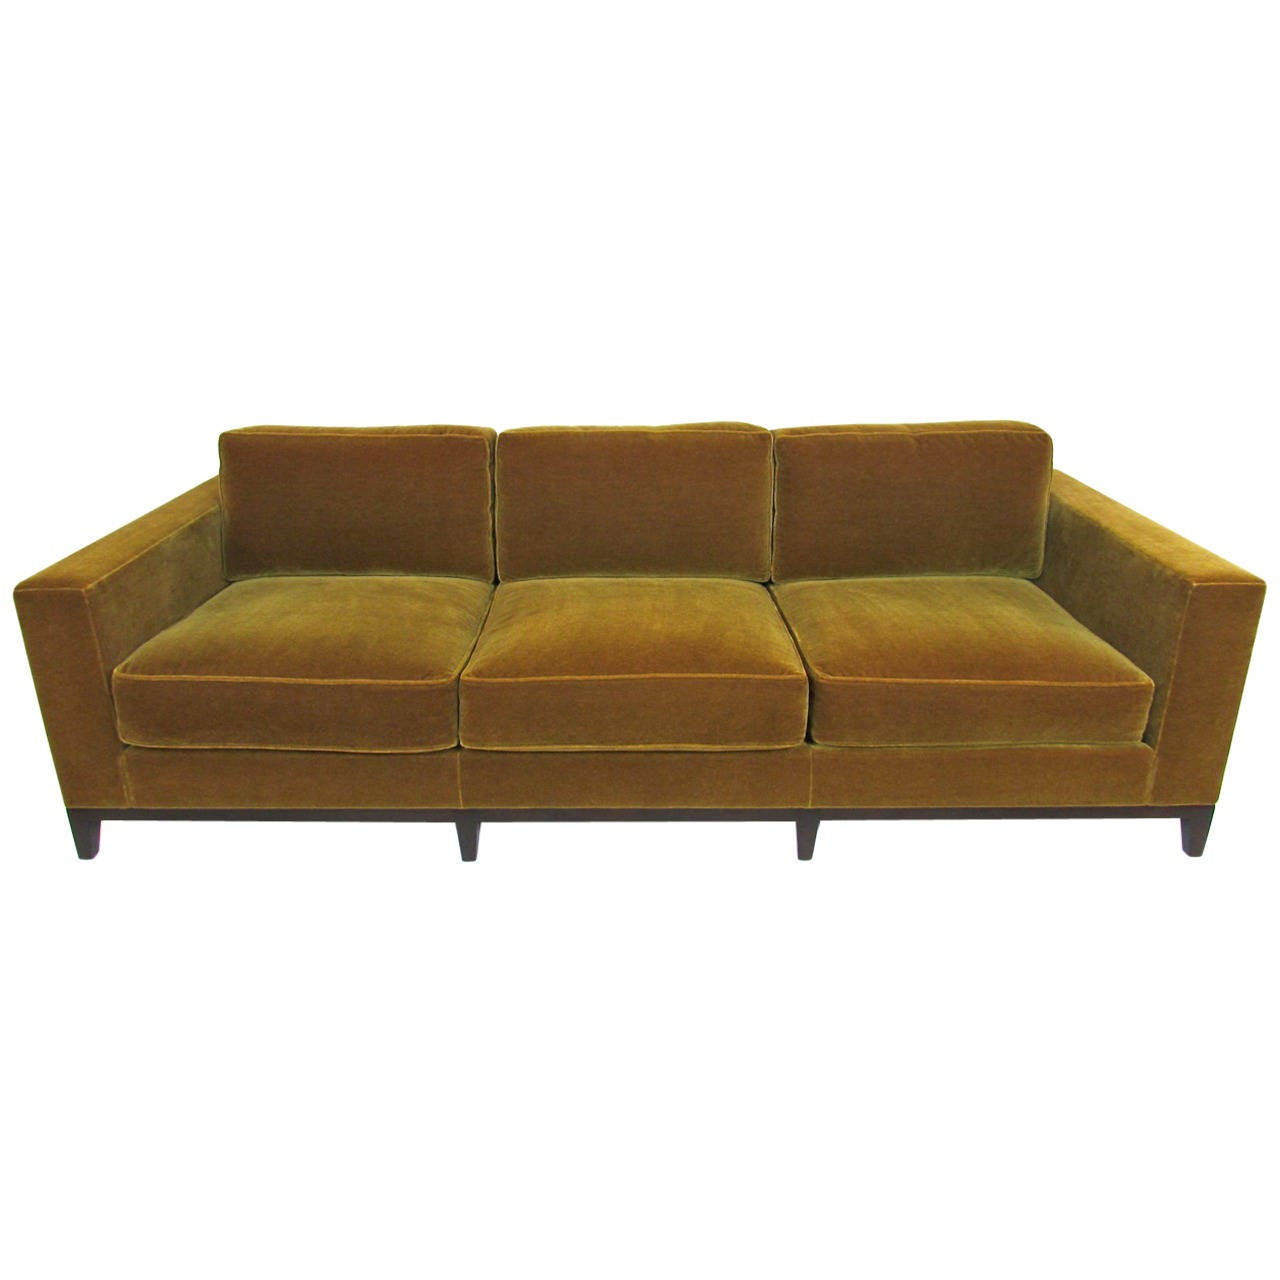 holly sofa the lounge co single seater bed dubai christian liaigre for hunt mousson at 1stdibs